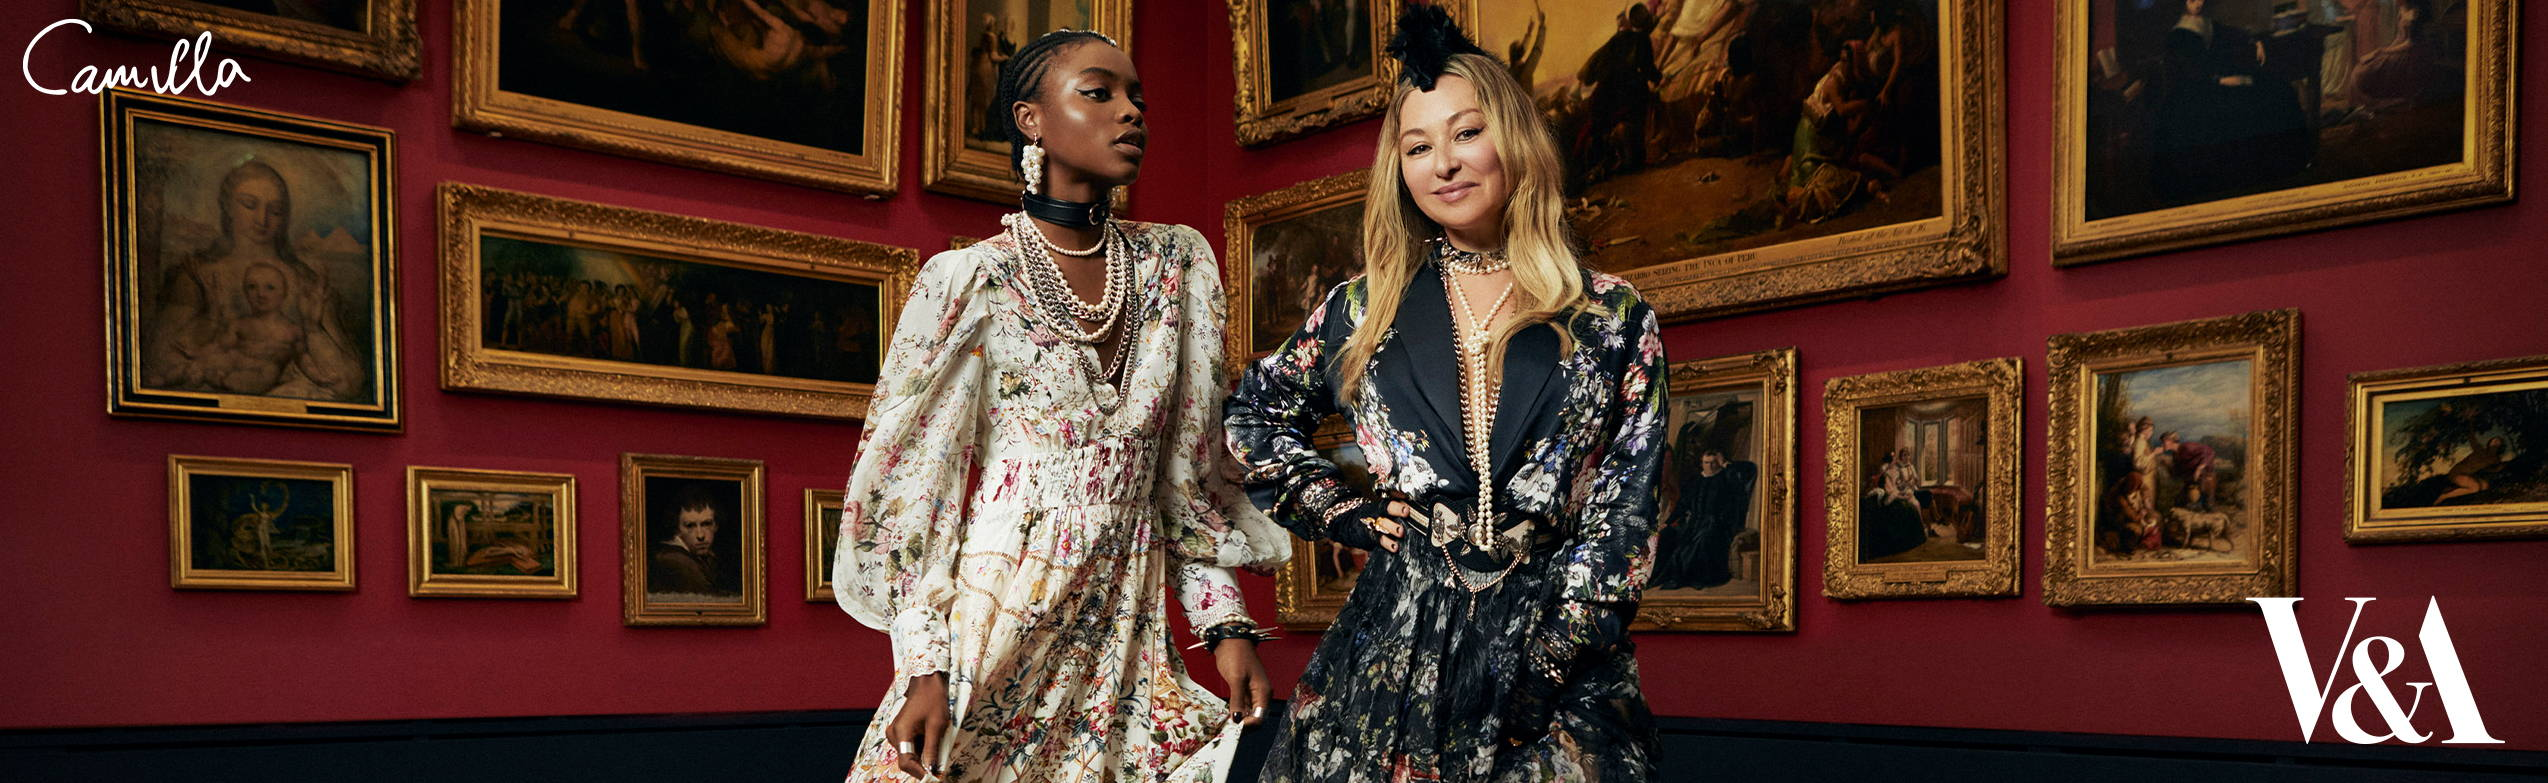 CAMILLA x The Victoria and Albert Museum Capsule Collection | Camilla Frank wearing black floral jacket and skirt, Model wearing cream floral dress